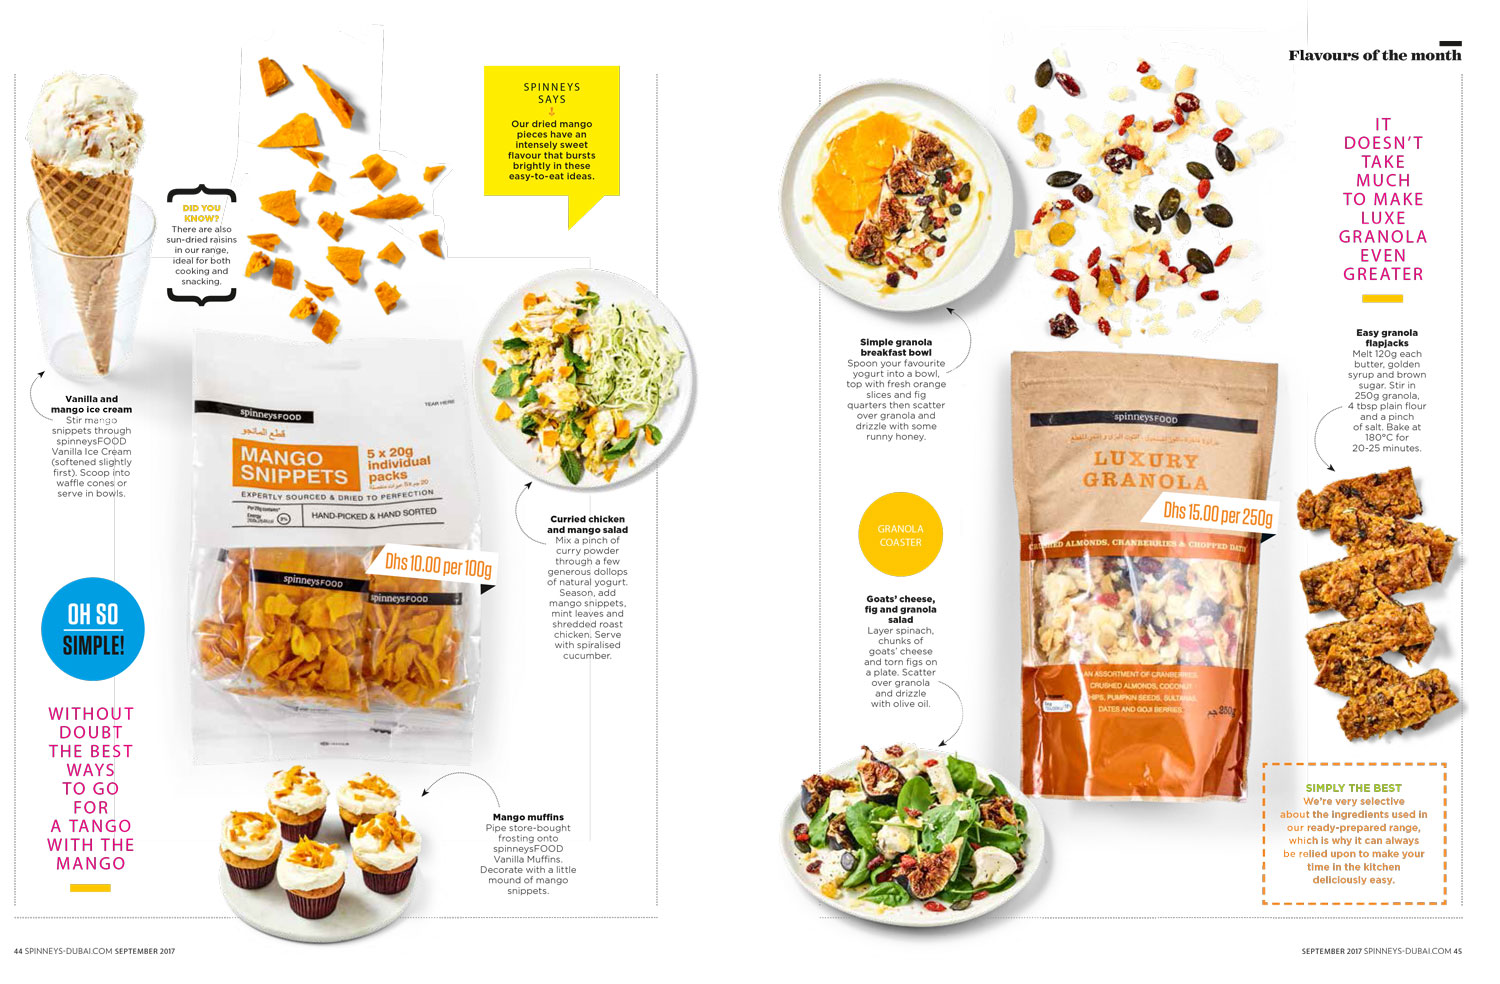 Granola-and-mango-snippets copy